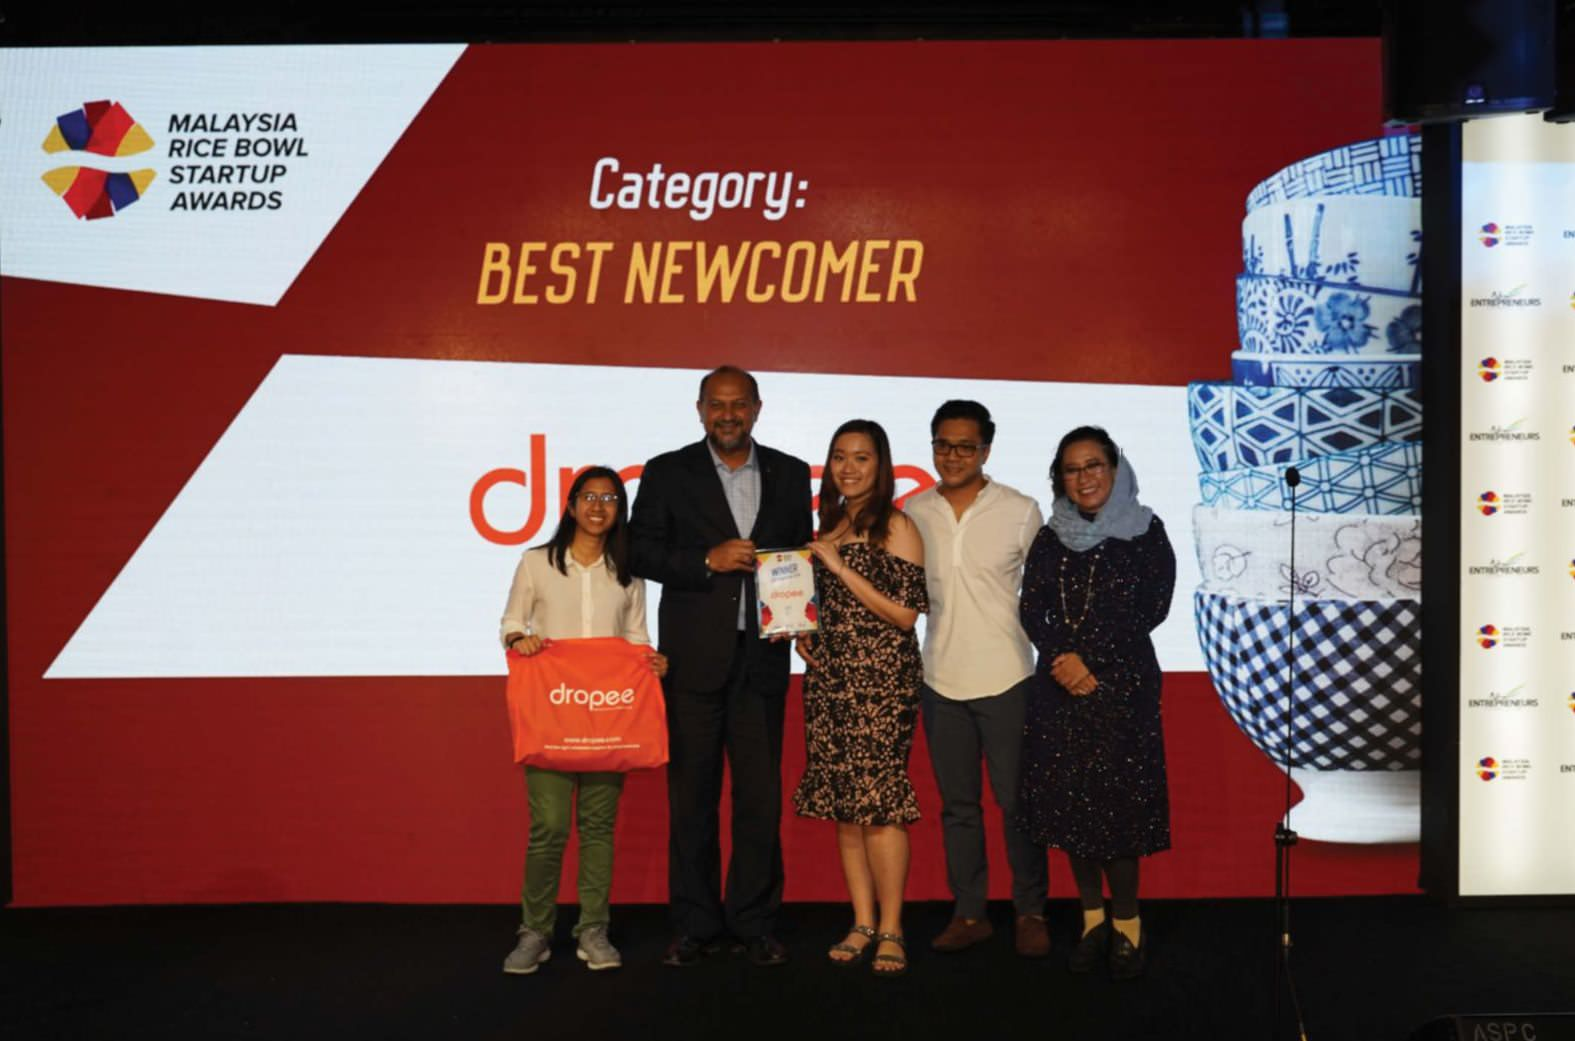 Malaysia Rice Bowl Startup Awards Fetes Nation's Best